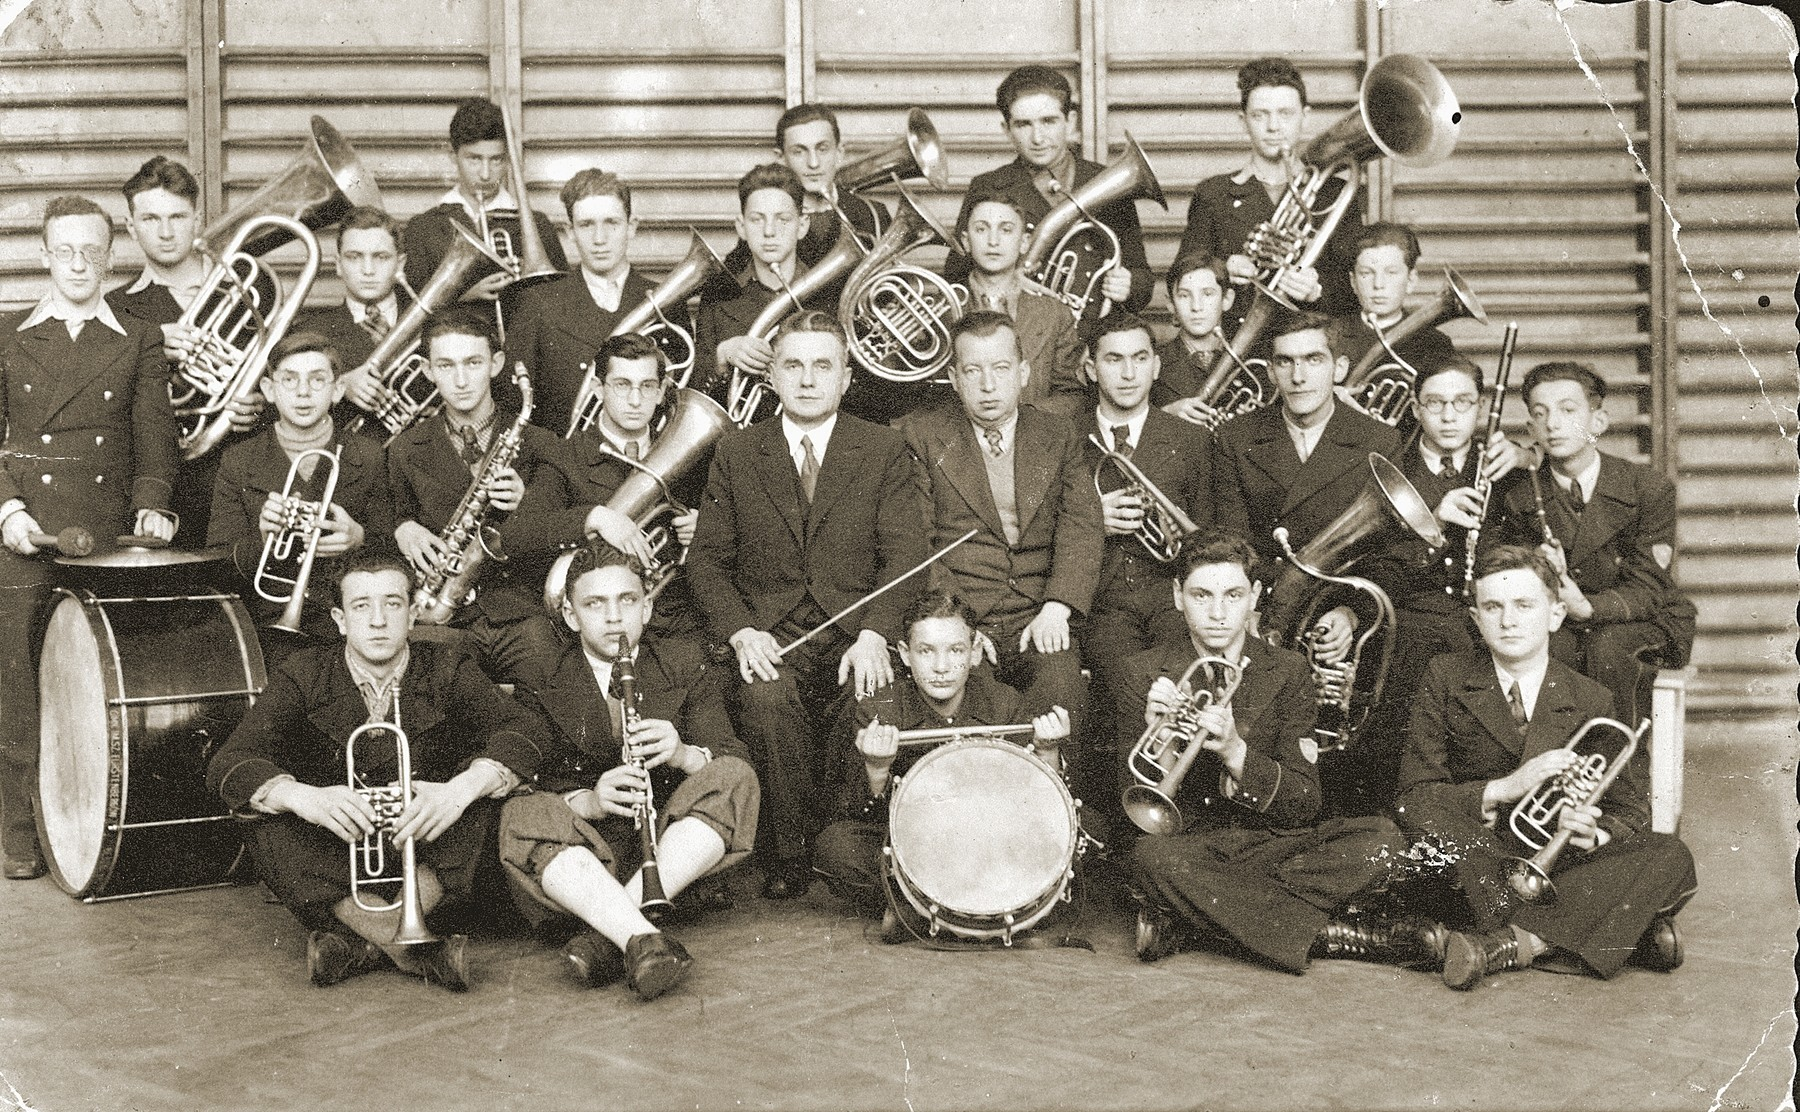 Students in the Furstenberg gymnasium band pose for a group portrait with their instruments.